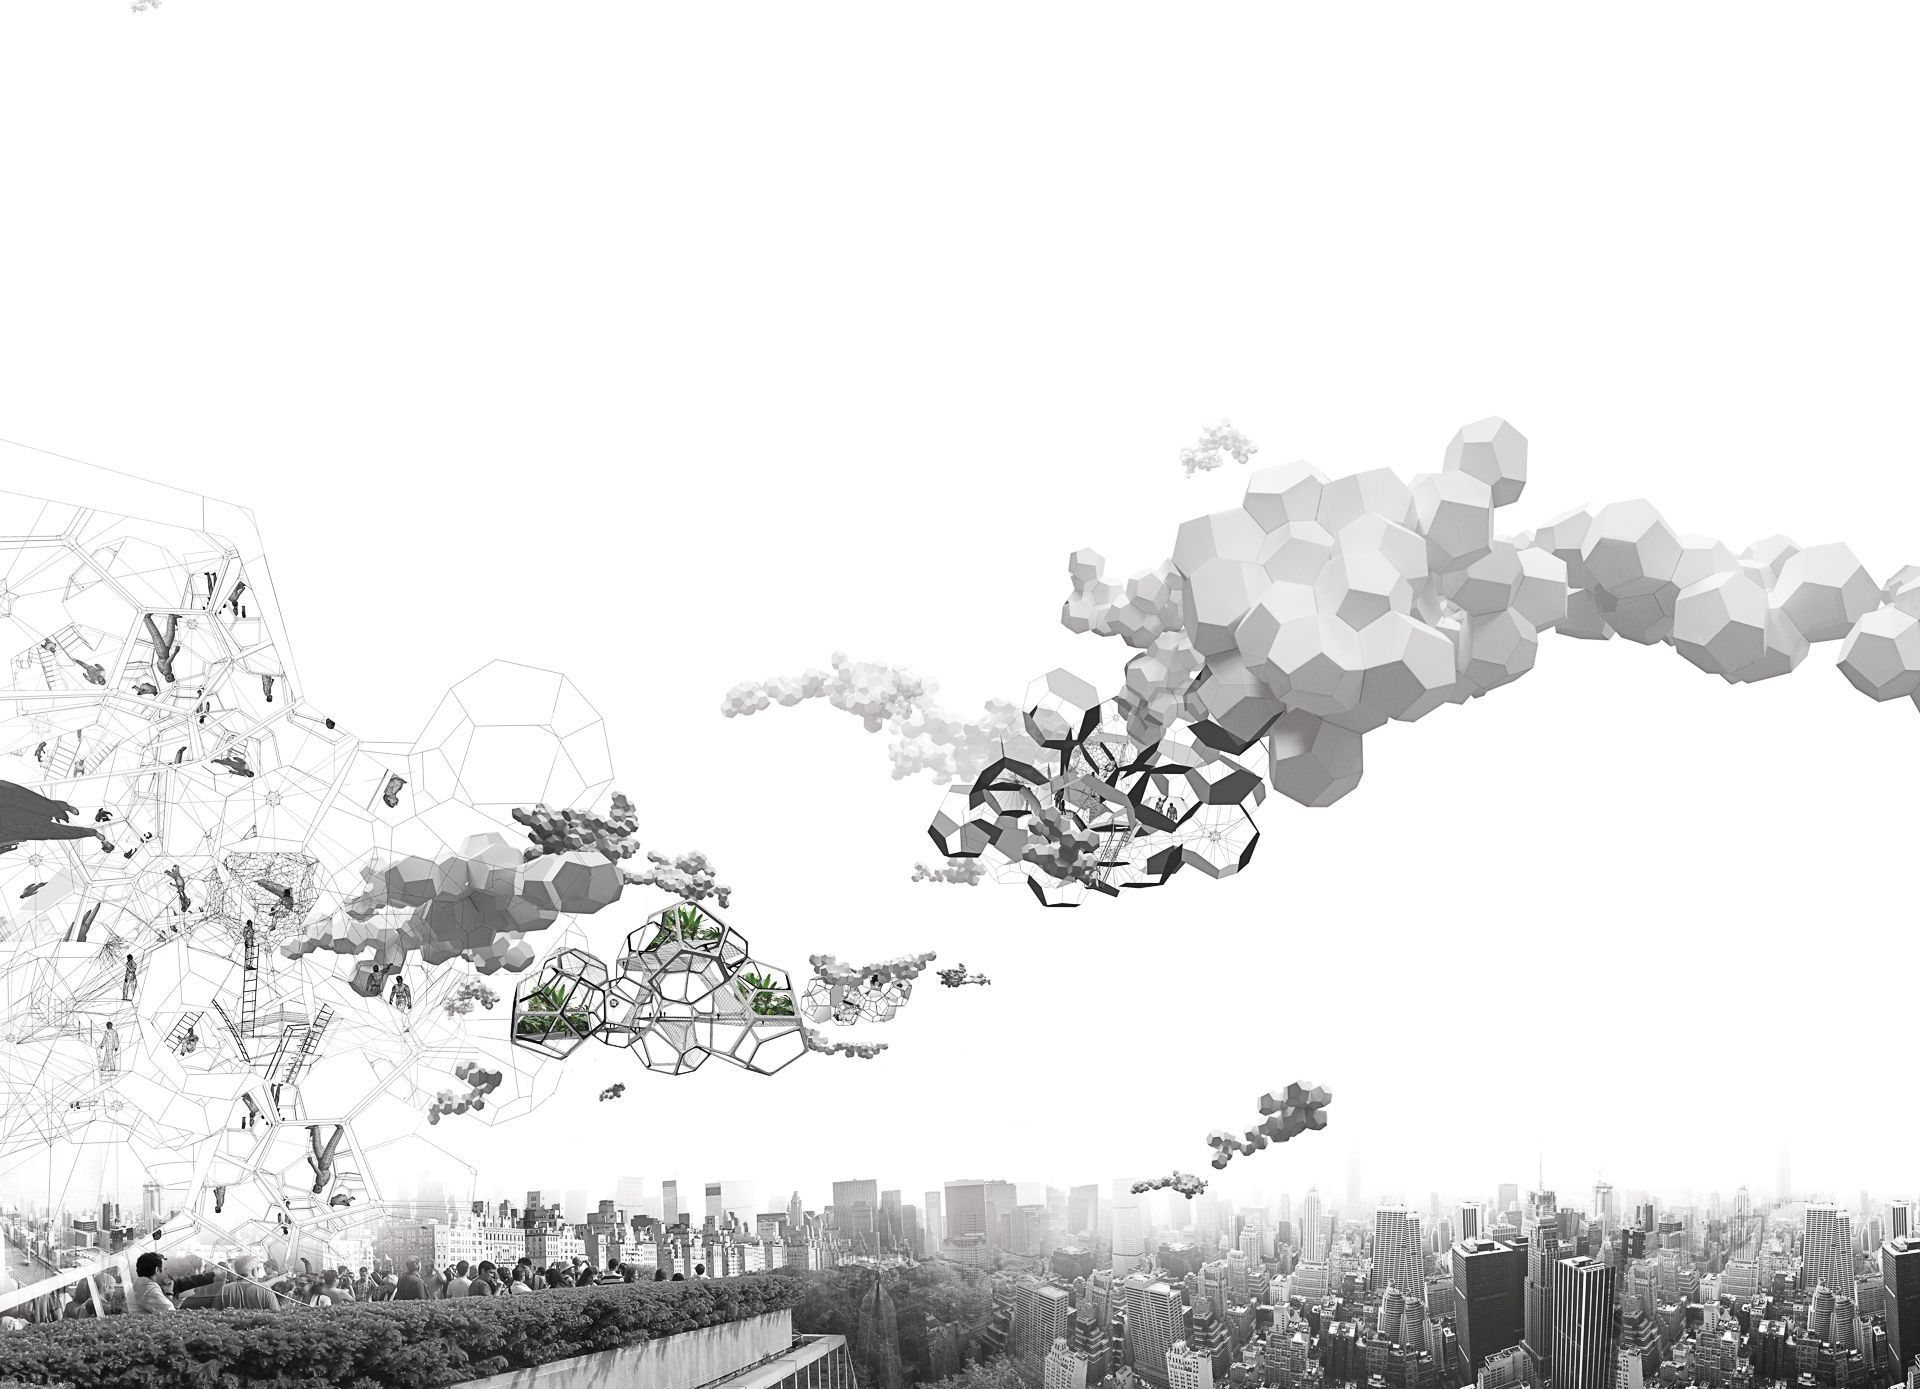 Tomás Saraceno's Cloud Cities and Solar Balloon Travel – Interview with The Creators Project